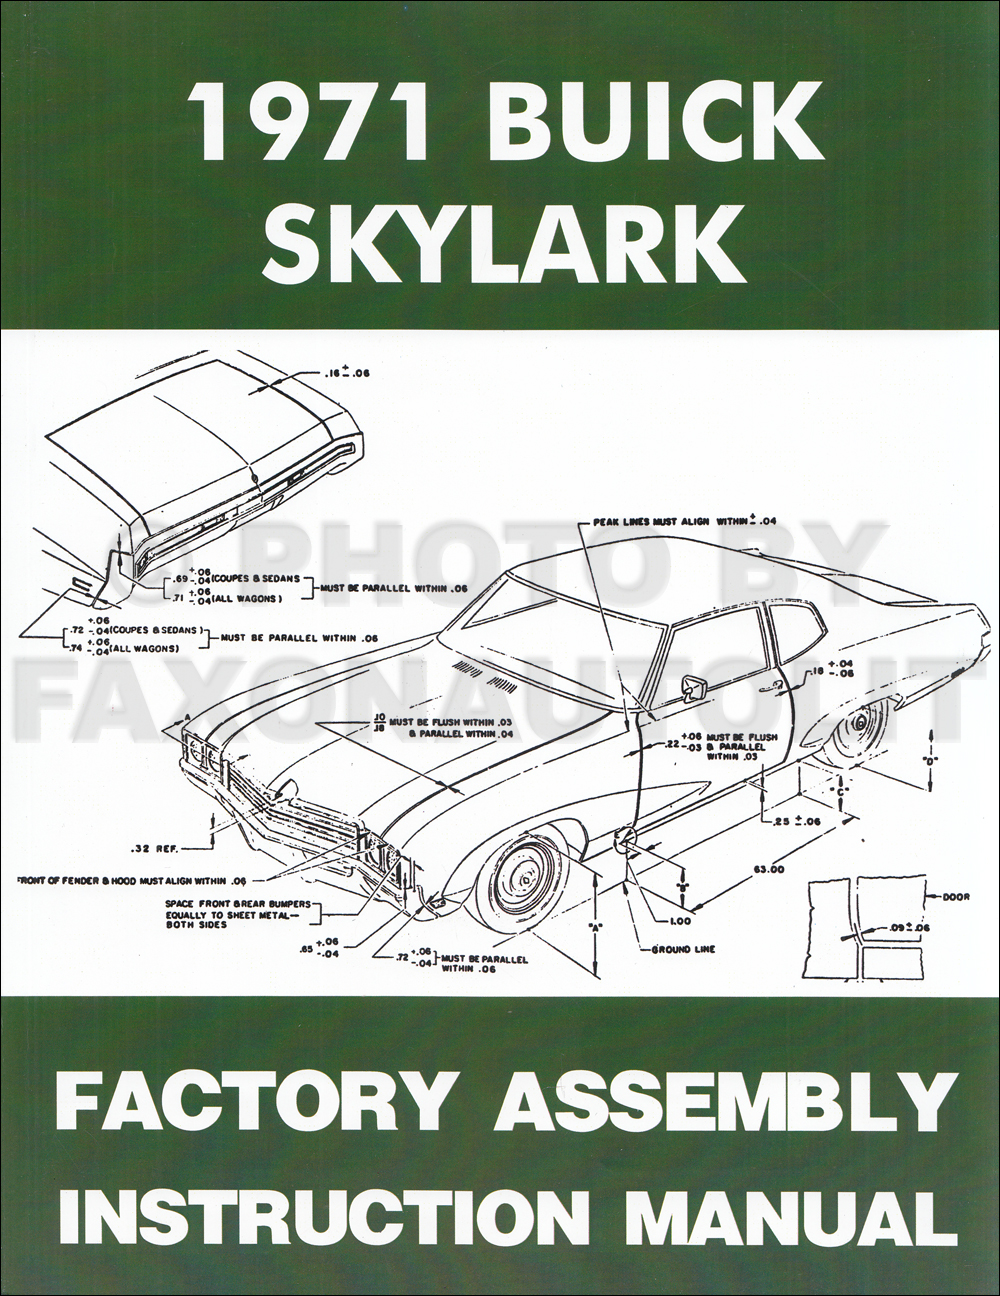 [SCHEMATICS_4UK]  B9F7 1972 Buick 455 Wiring Diagram | Wiring Library | Buick 455 Wiring Diagram |  | Wiring Library